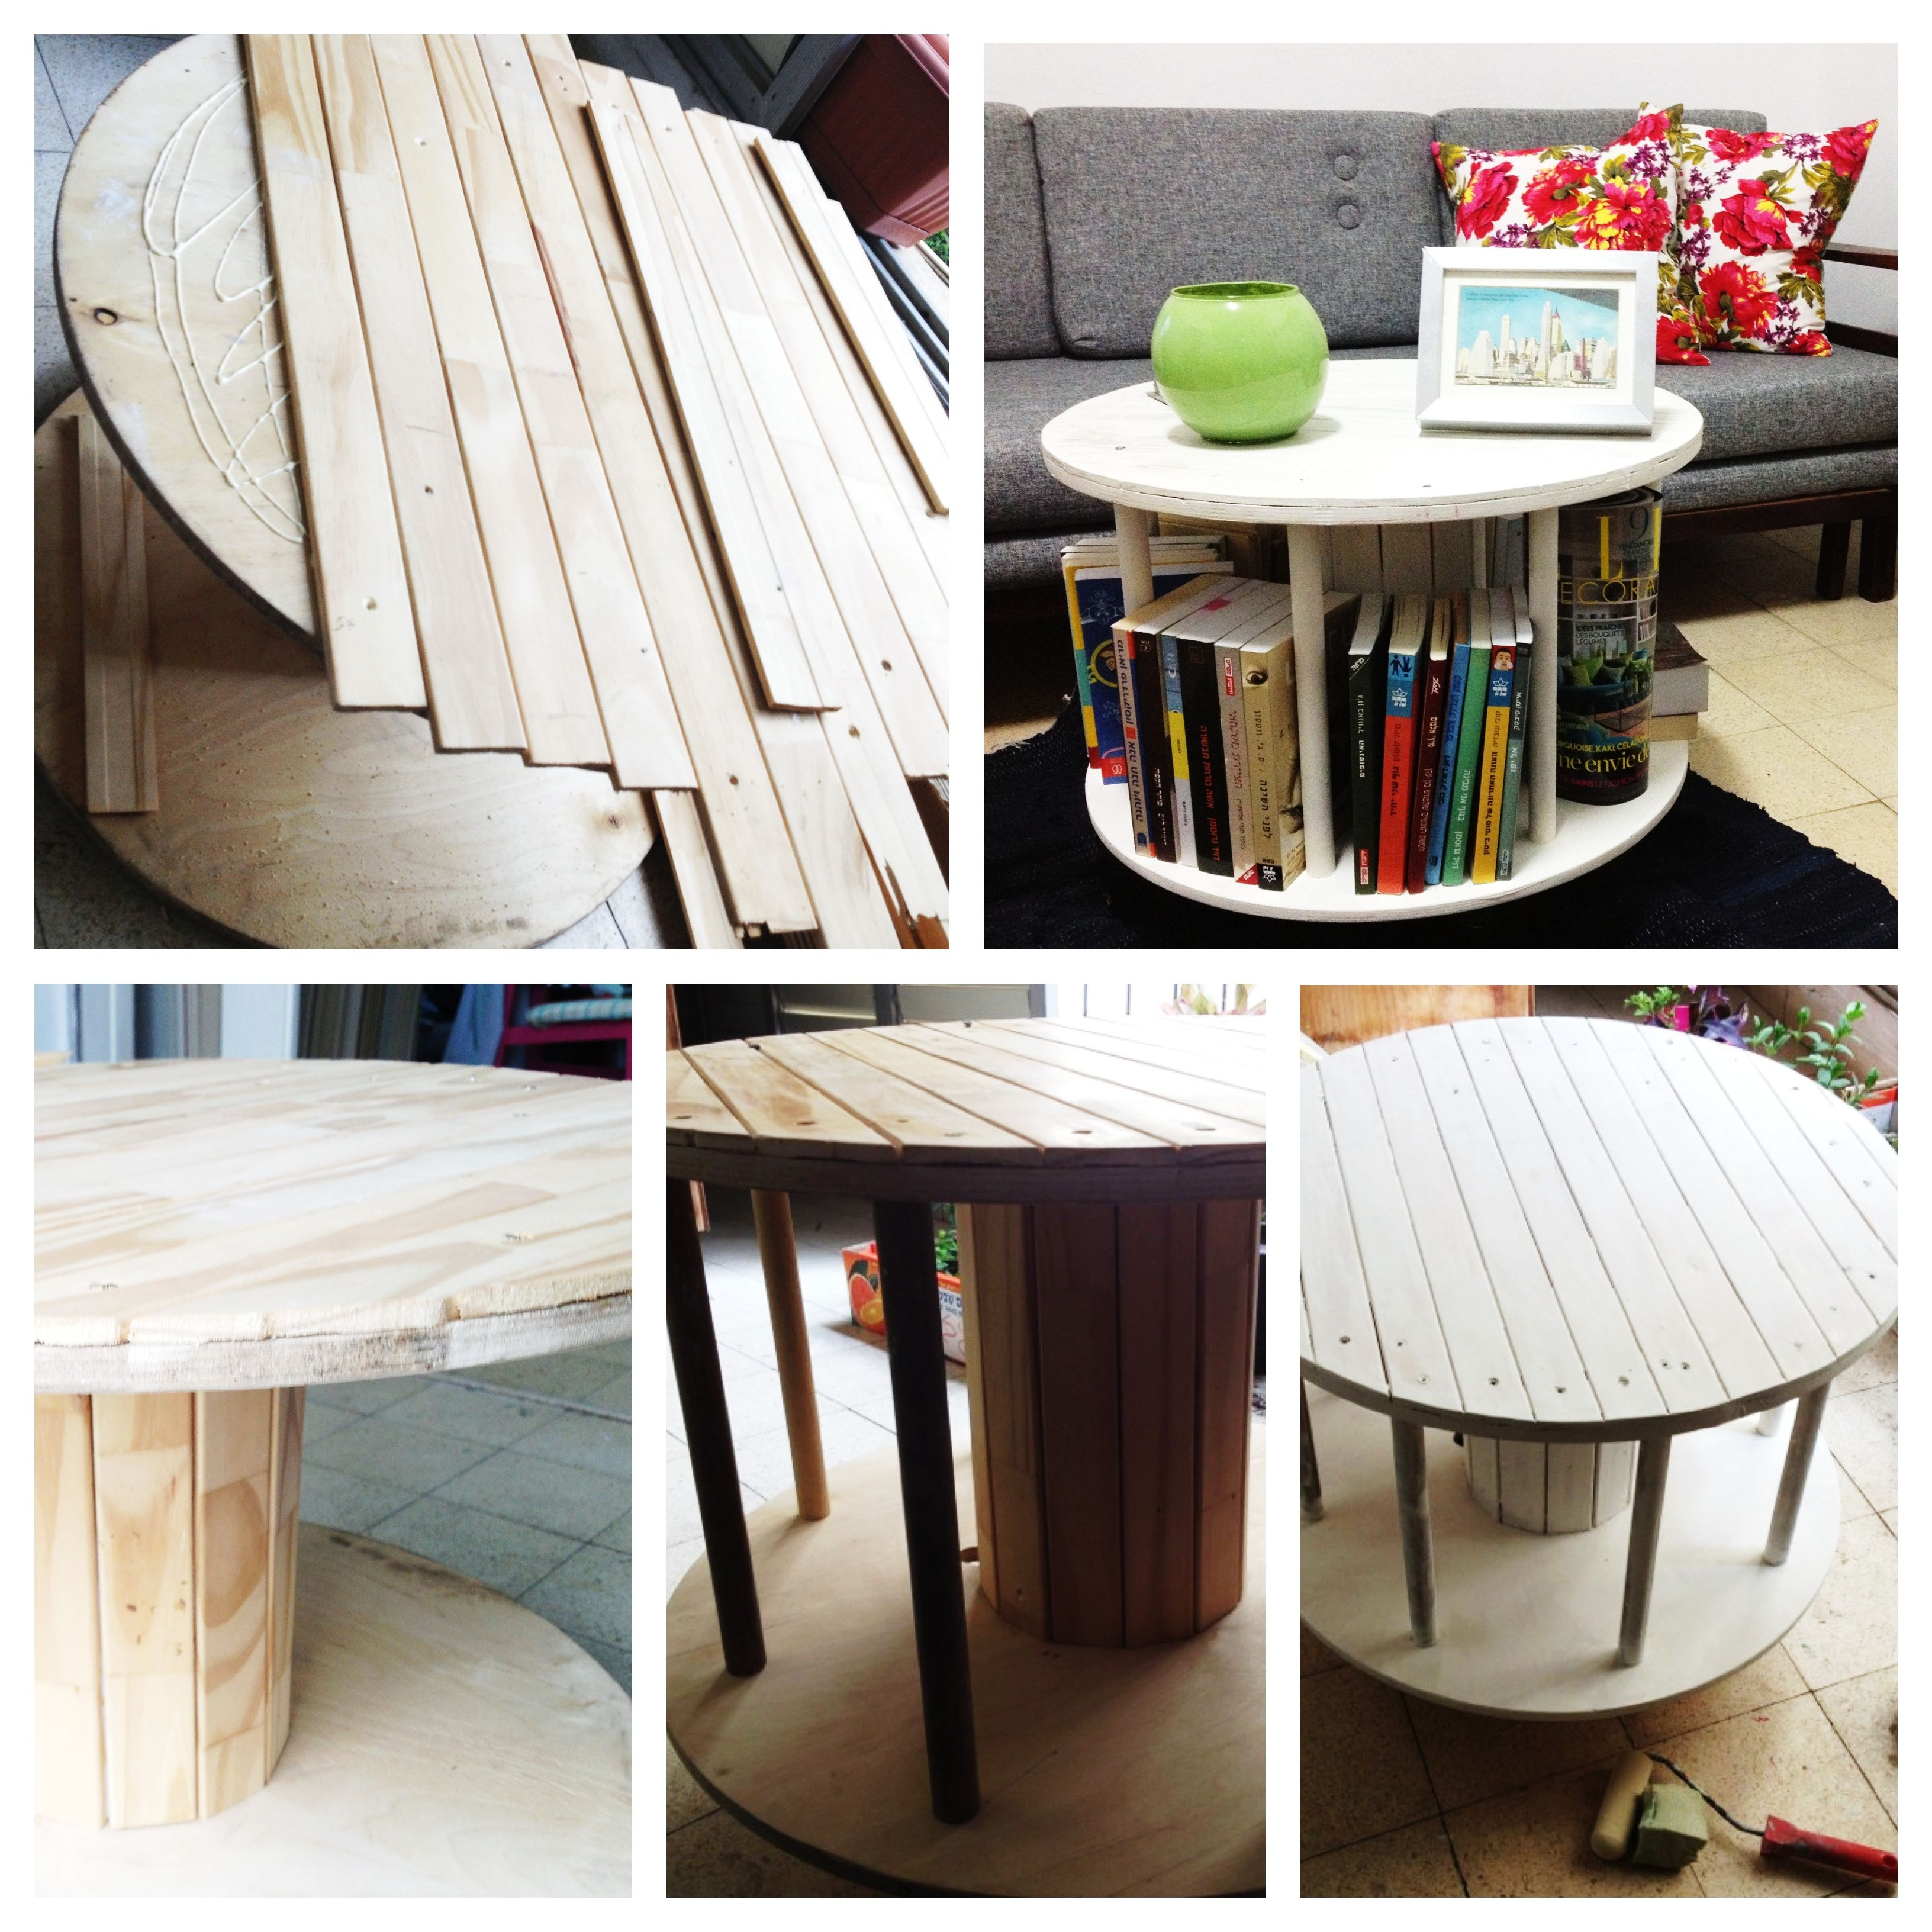 Upcycled cable drum - Pinterest inspired